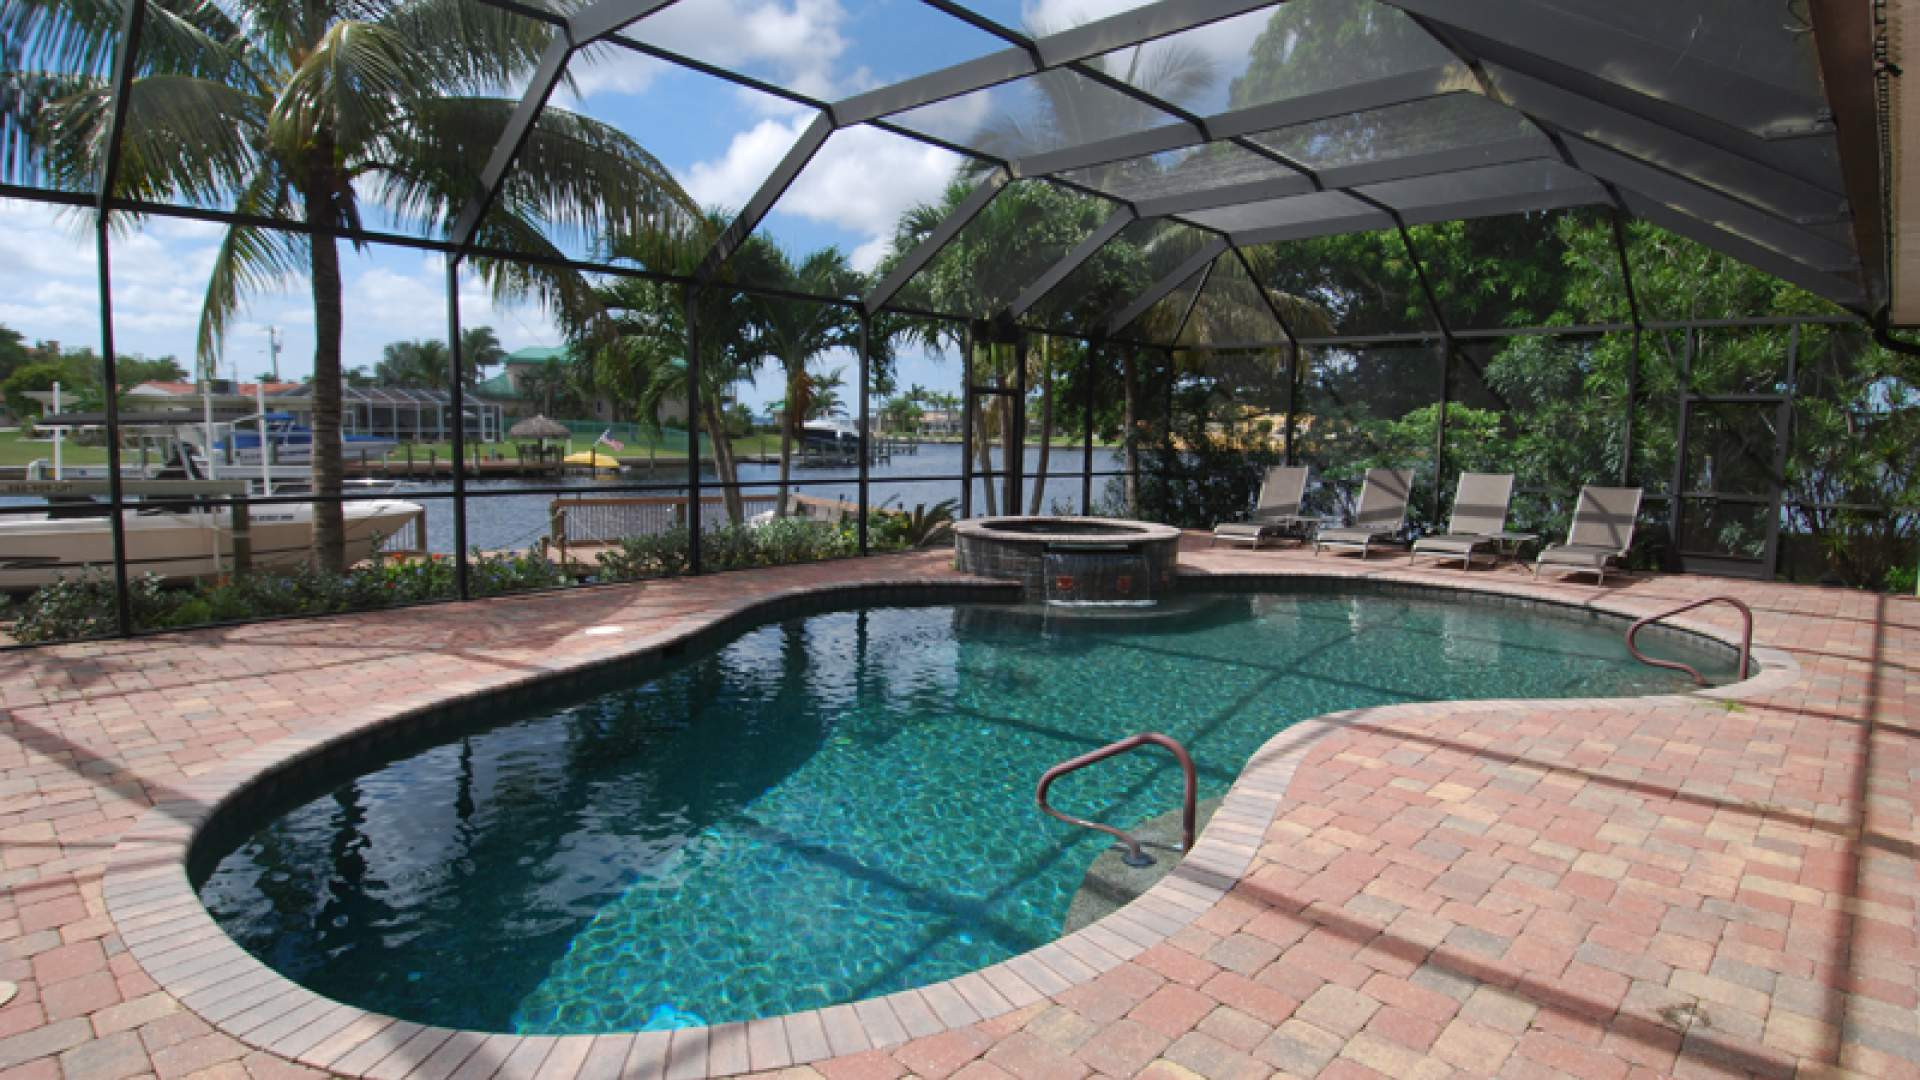 The large pool area overlooks the wide sailboat canal